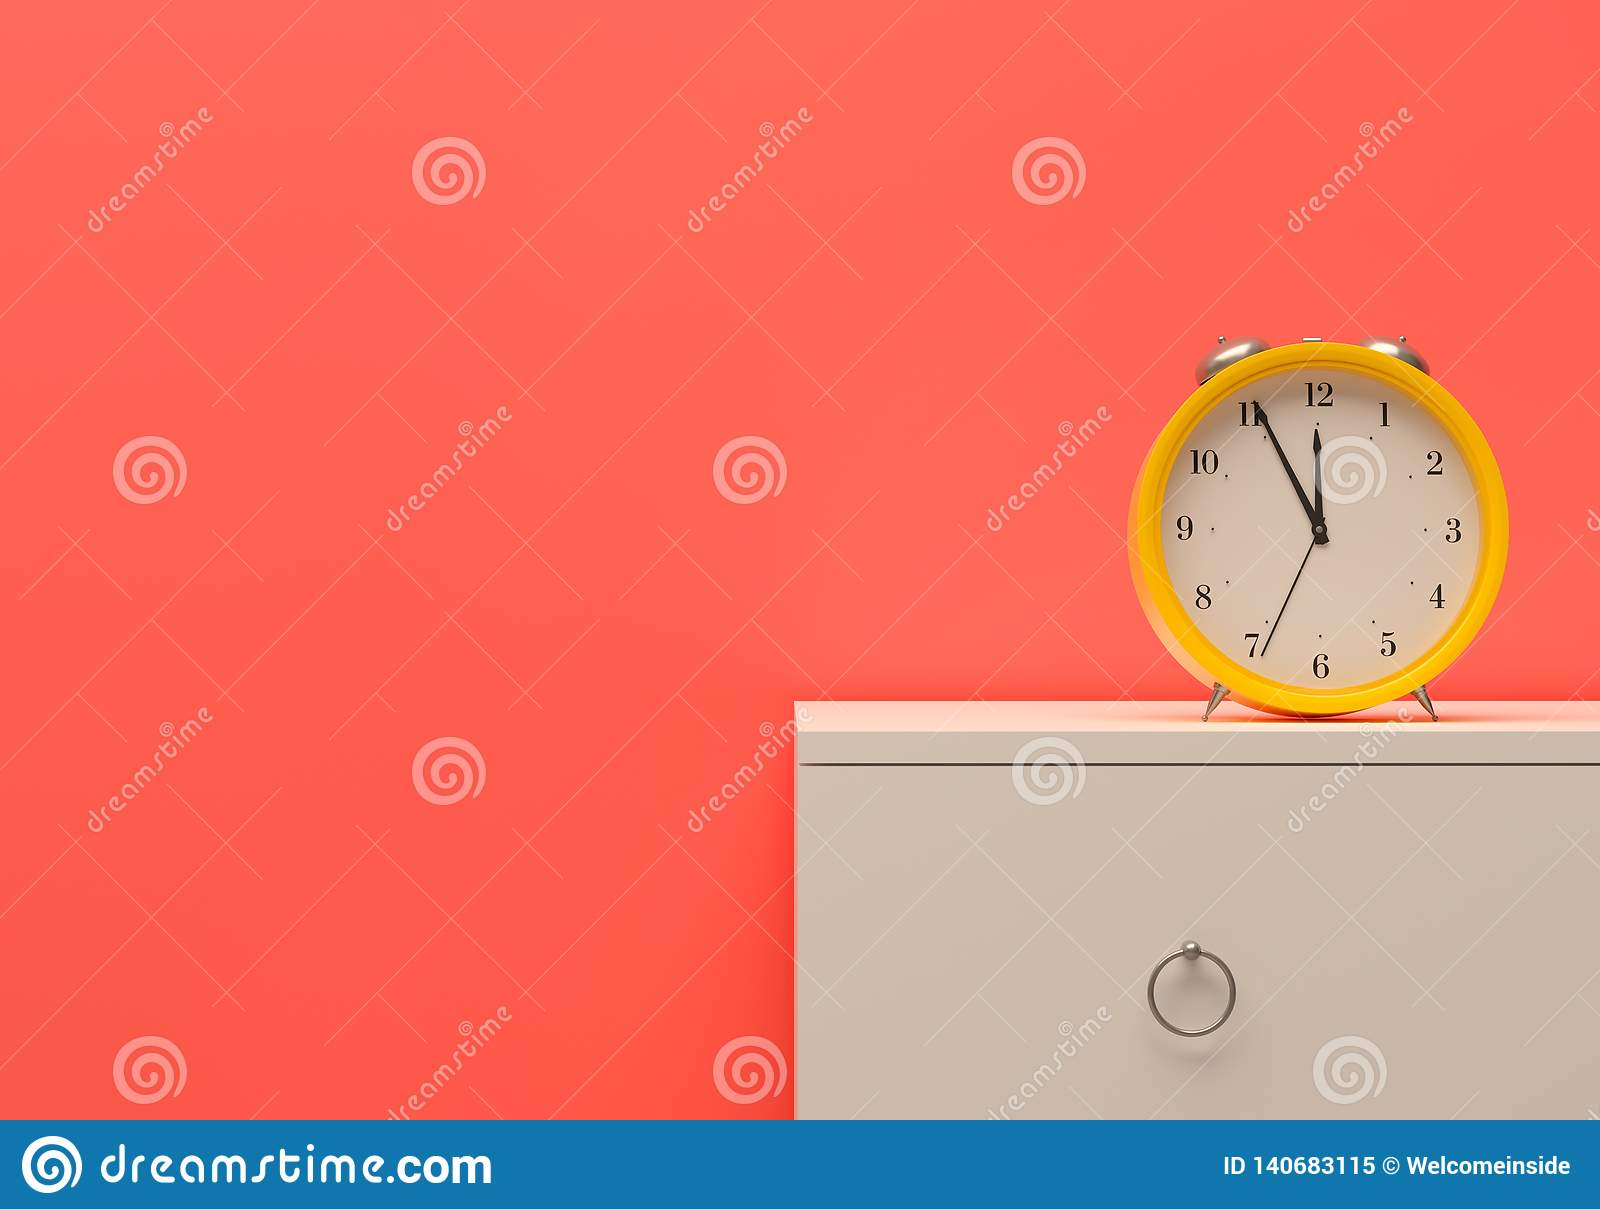 Alarm time management alert Mockup business template On time yellow alarm clock room pink wall white furniture bedside table. 3d i